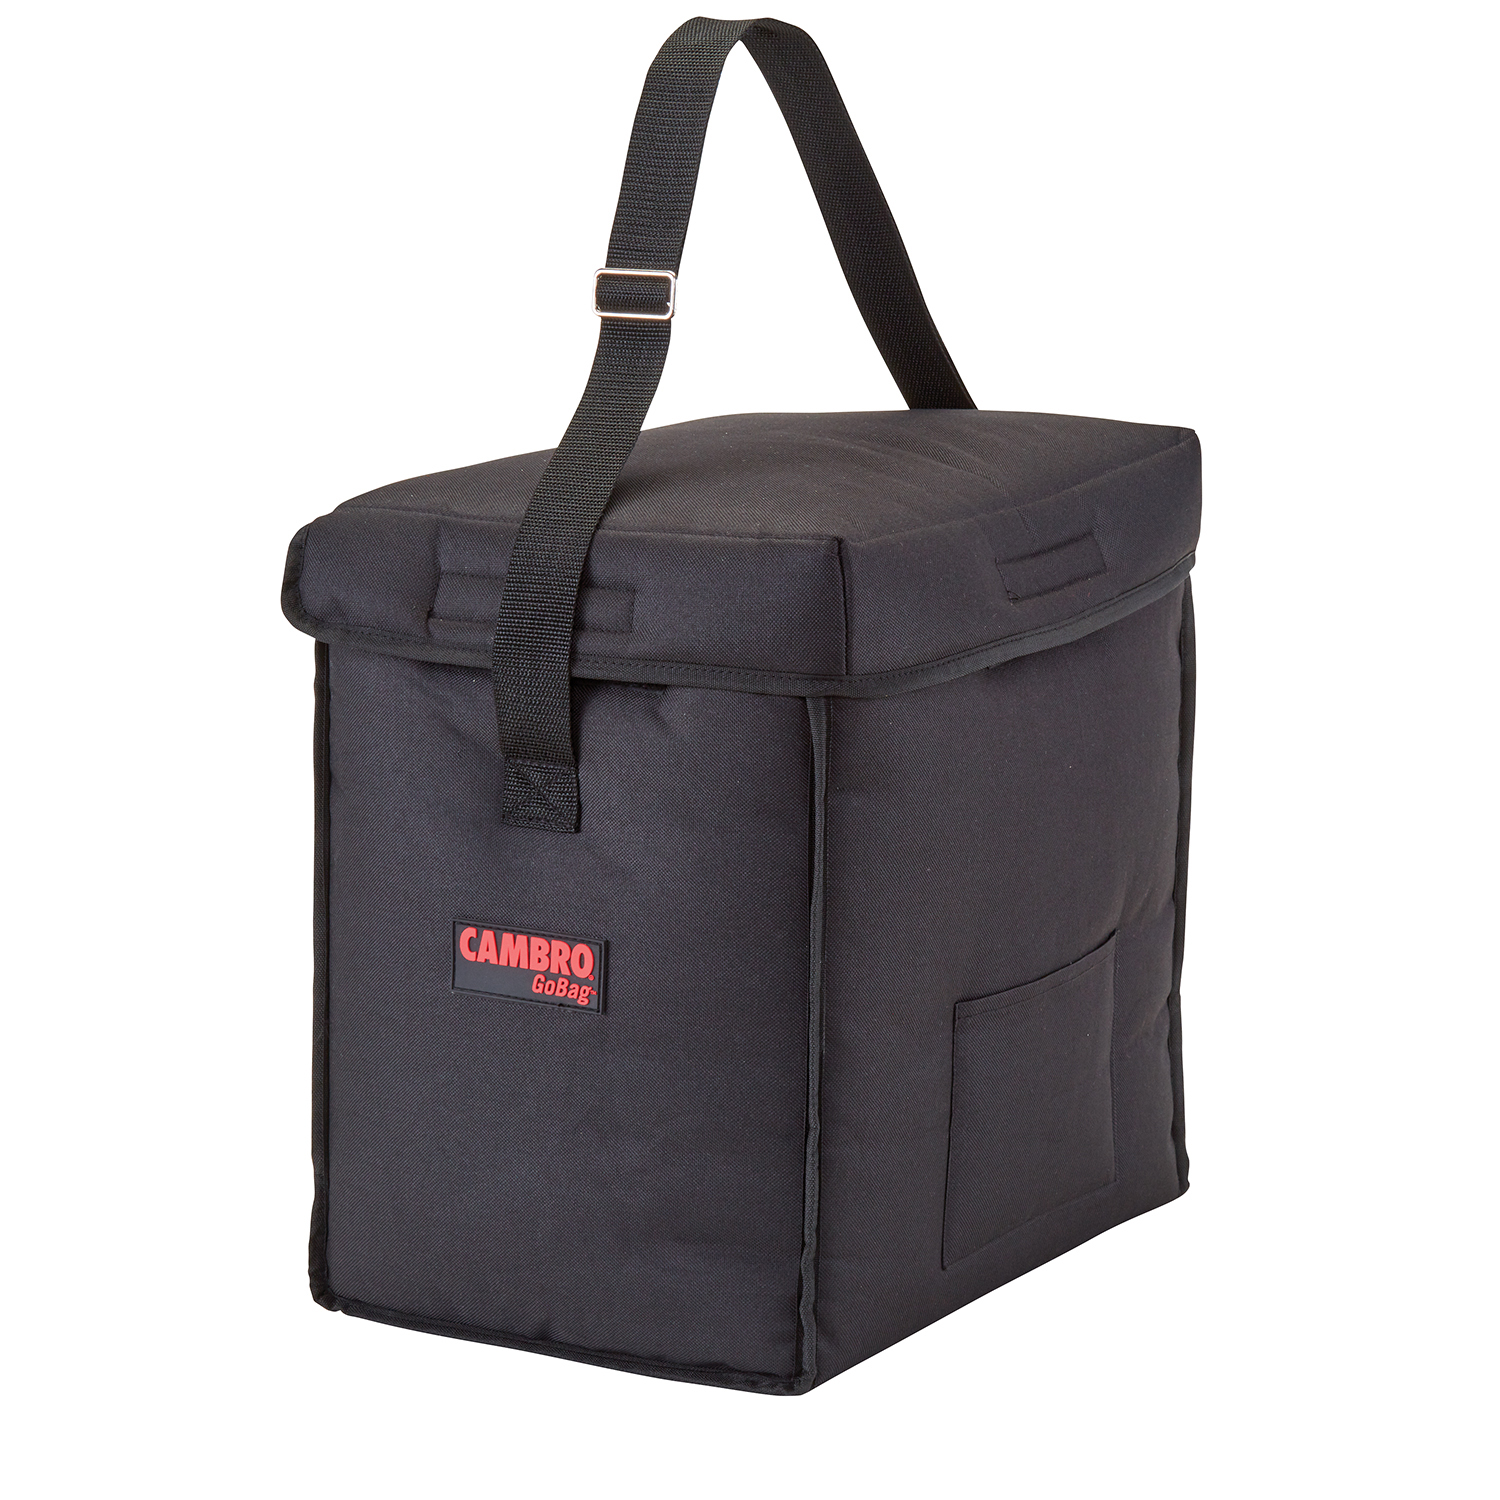 Cambro GBD13913110 food carrier, soft material